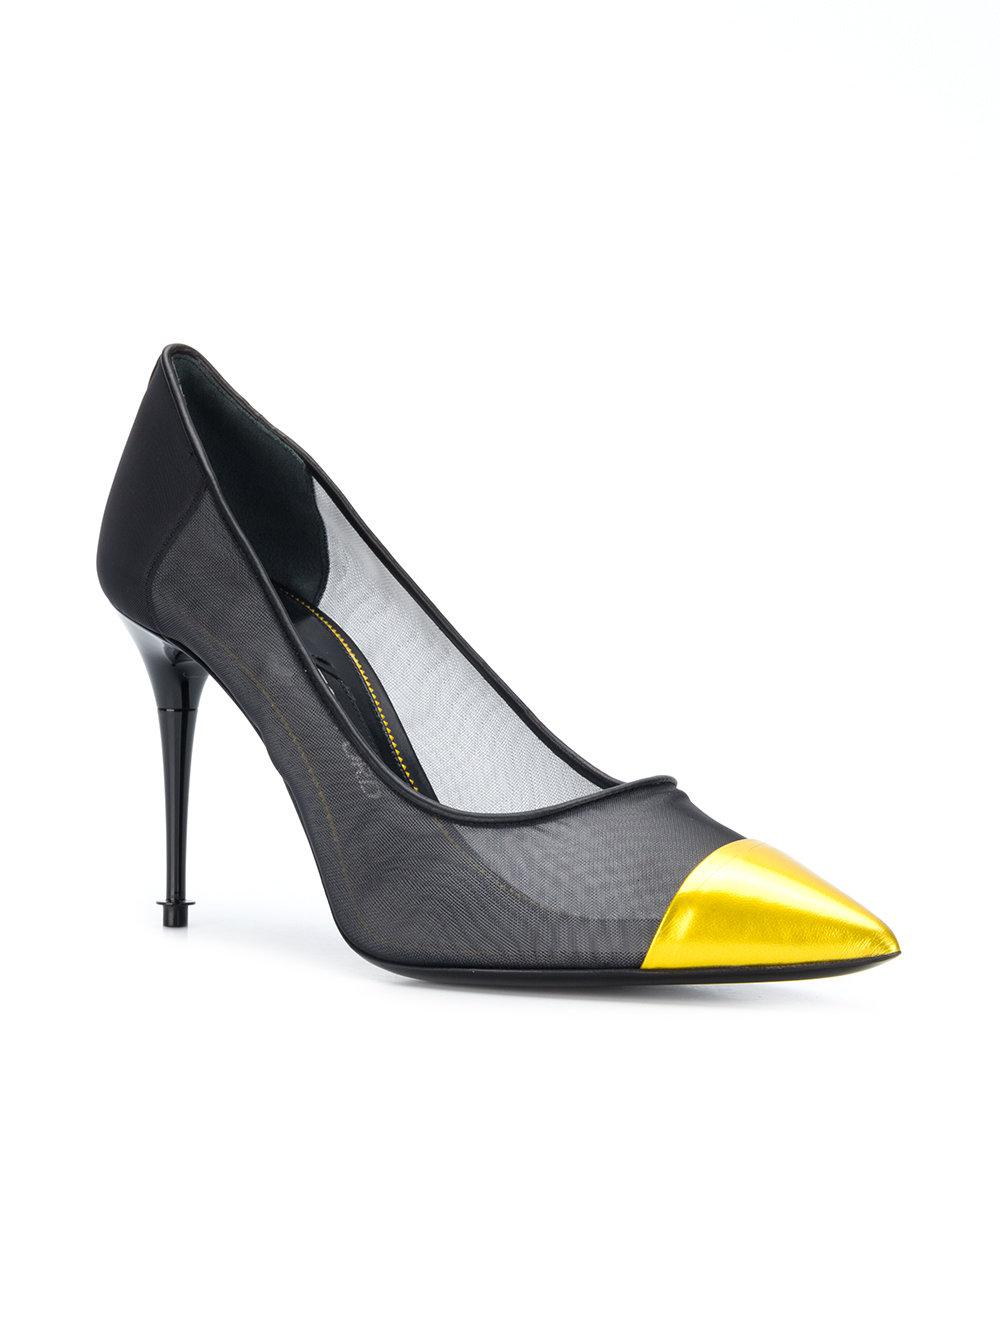 Tom Ford Contrast toe cap pumps Clearance Professional Buy Cheap Huge Surprise Sale Inexpensive inuJDra